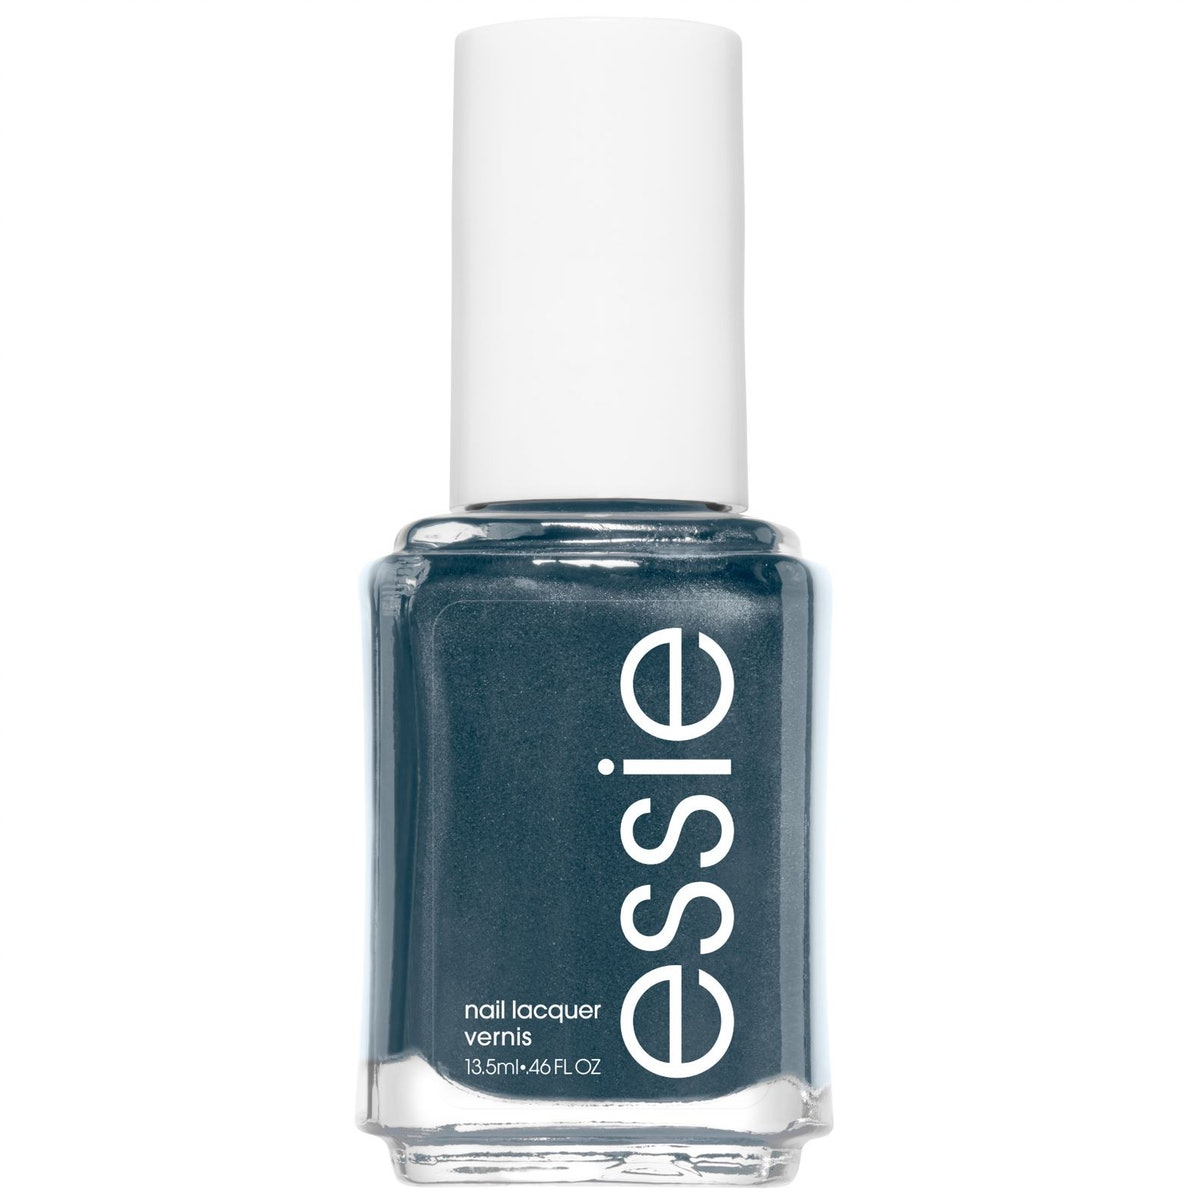 Serene Slate Nail Polish Collection in Cause & Reflect